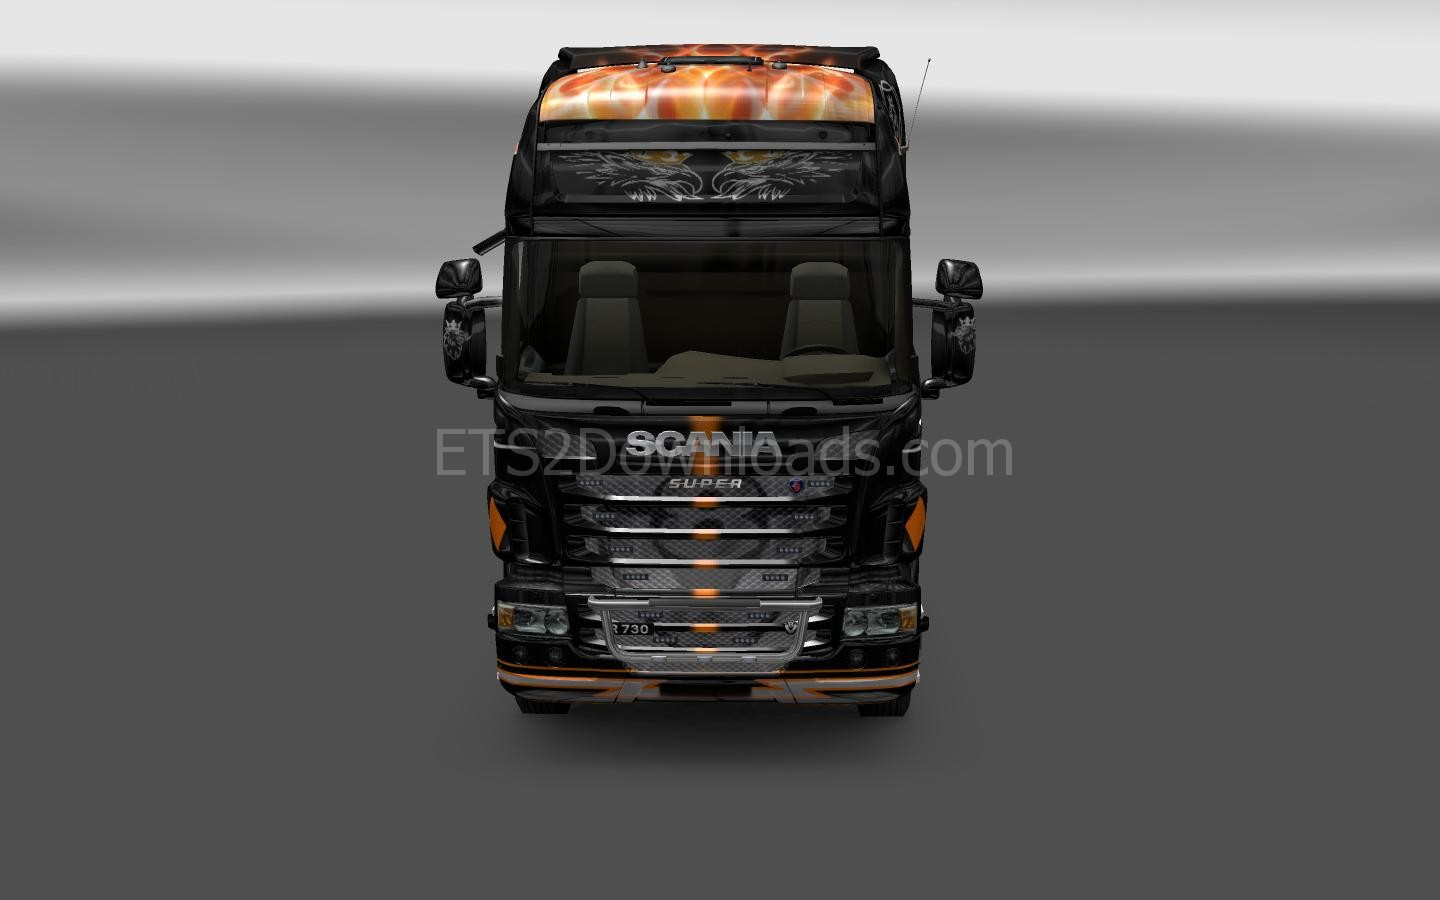 black-skin-for-scania-2009-ets2-1